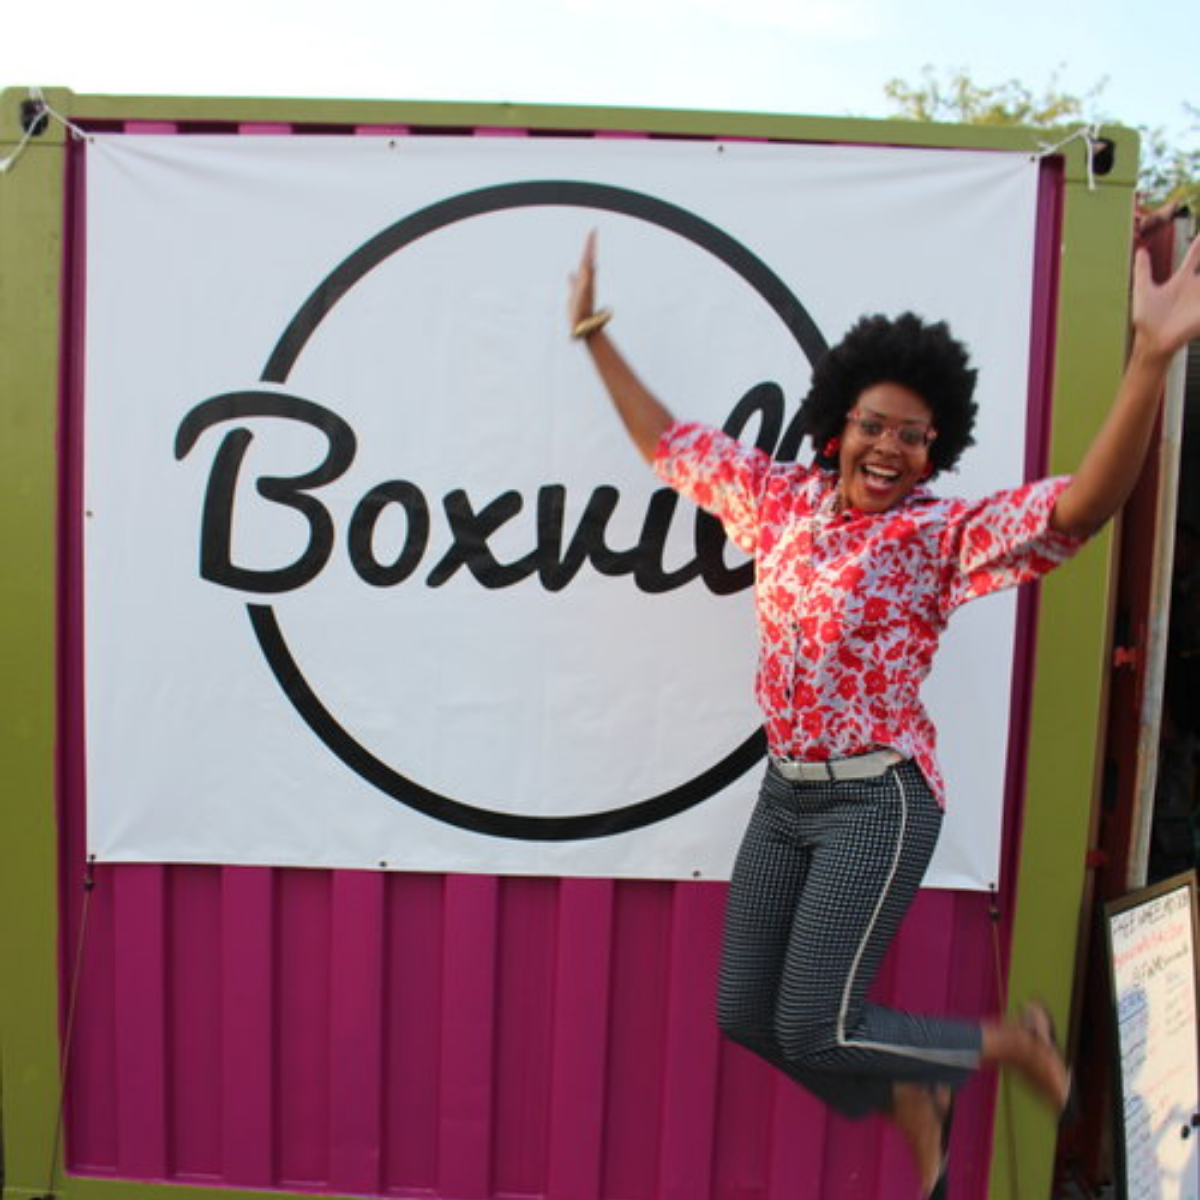 Boxville.org